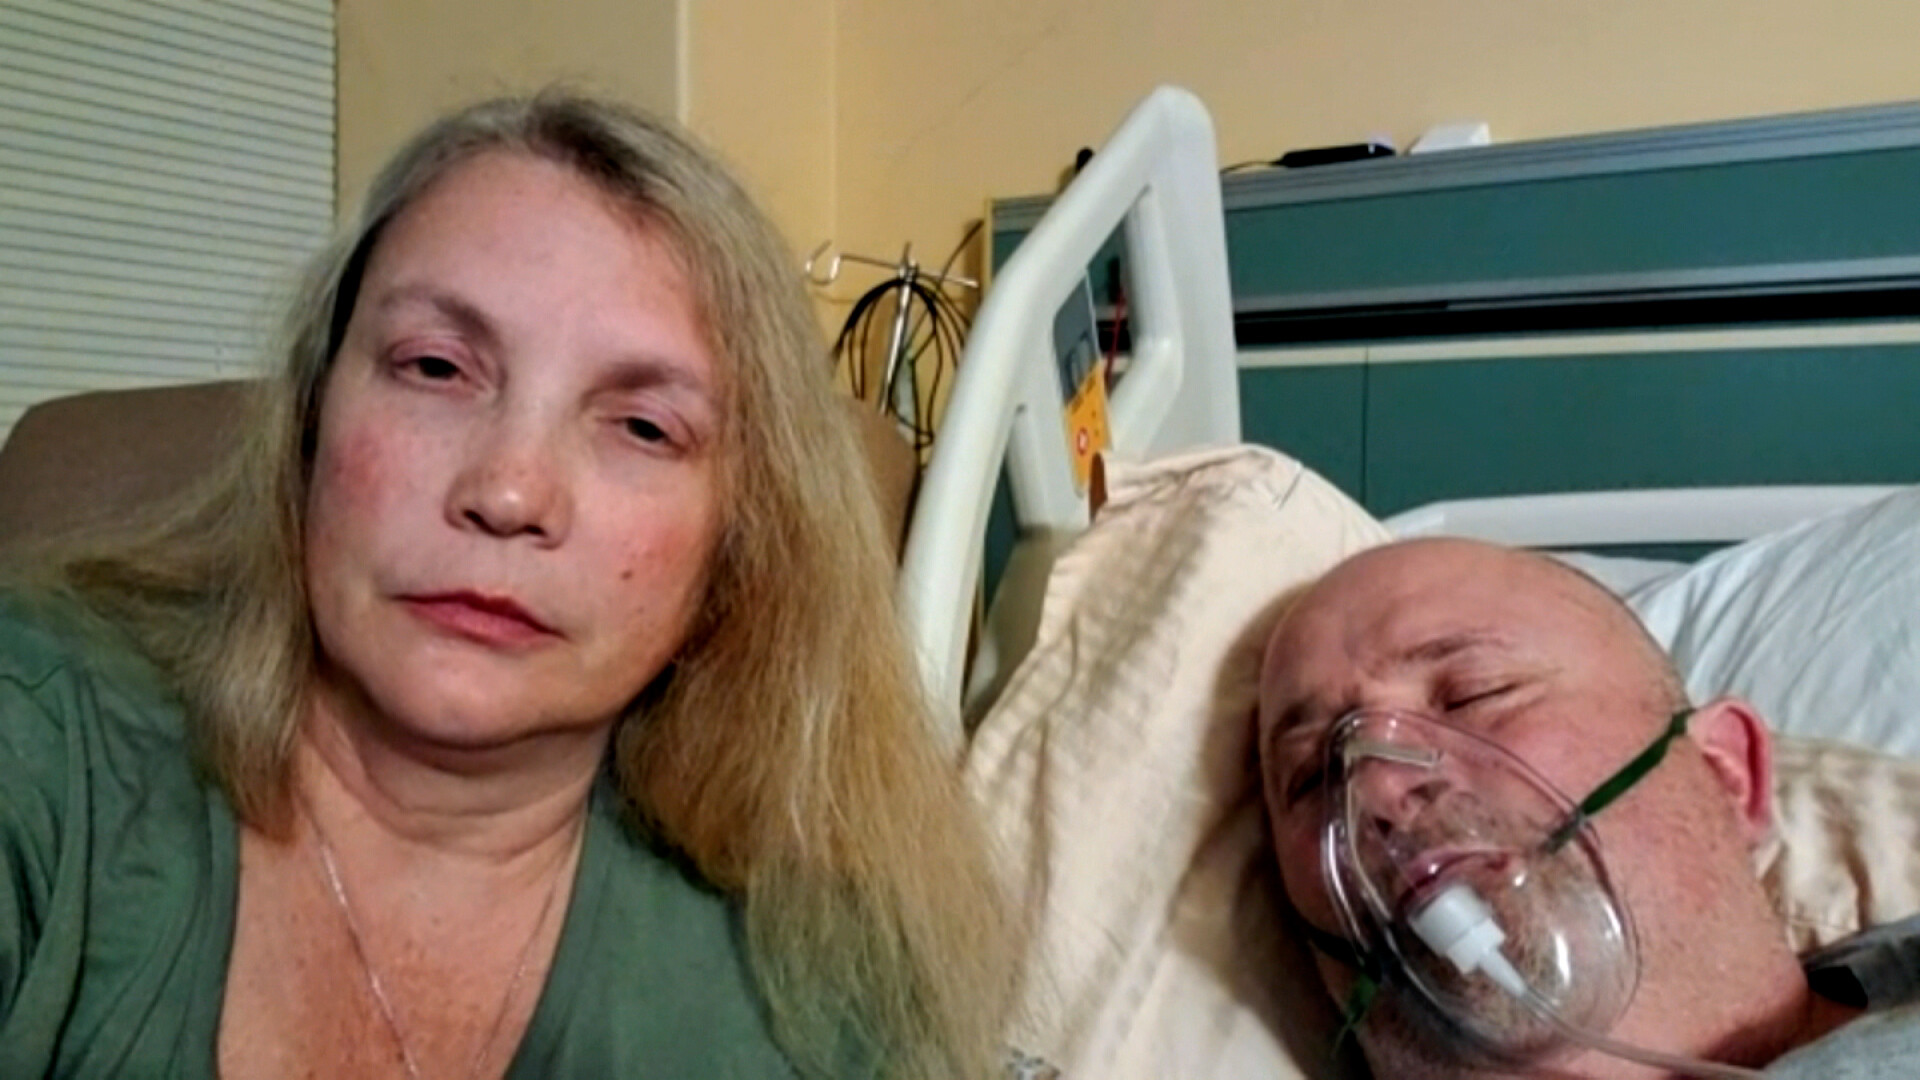 This Mississippi woman's unvaccinated husband is battling Covid-19 in an ICU: 'I wouldn't want my worst enemy to go through this'